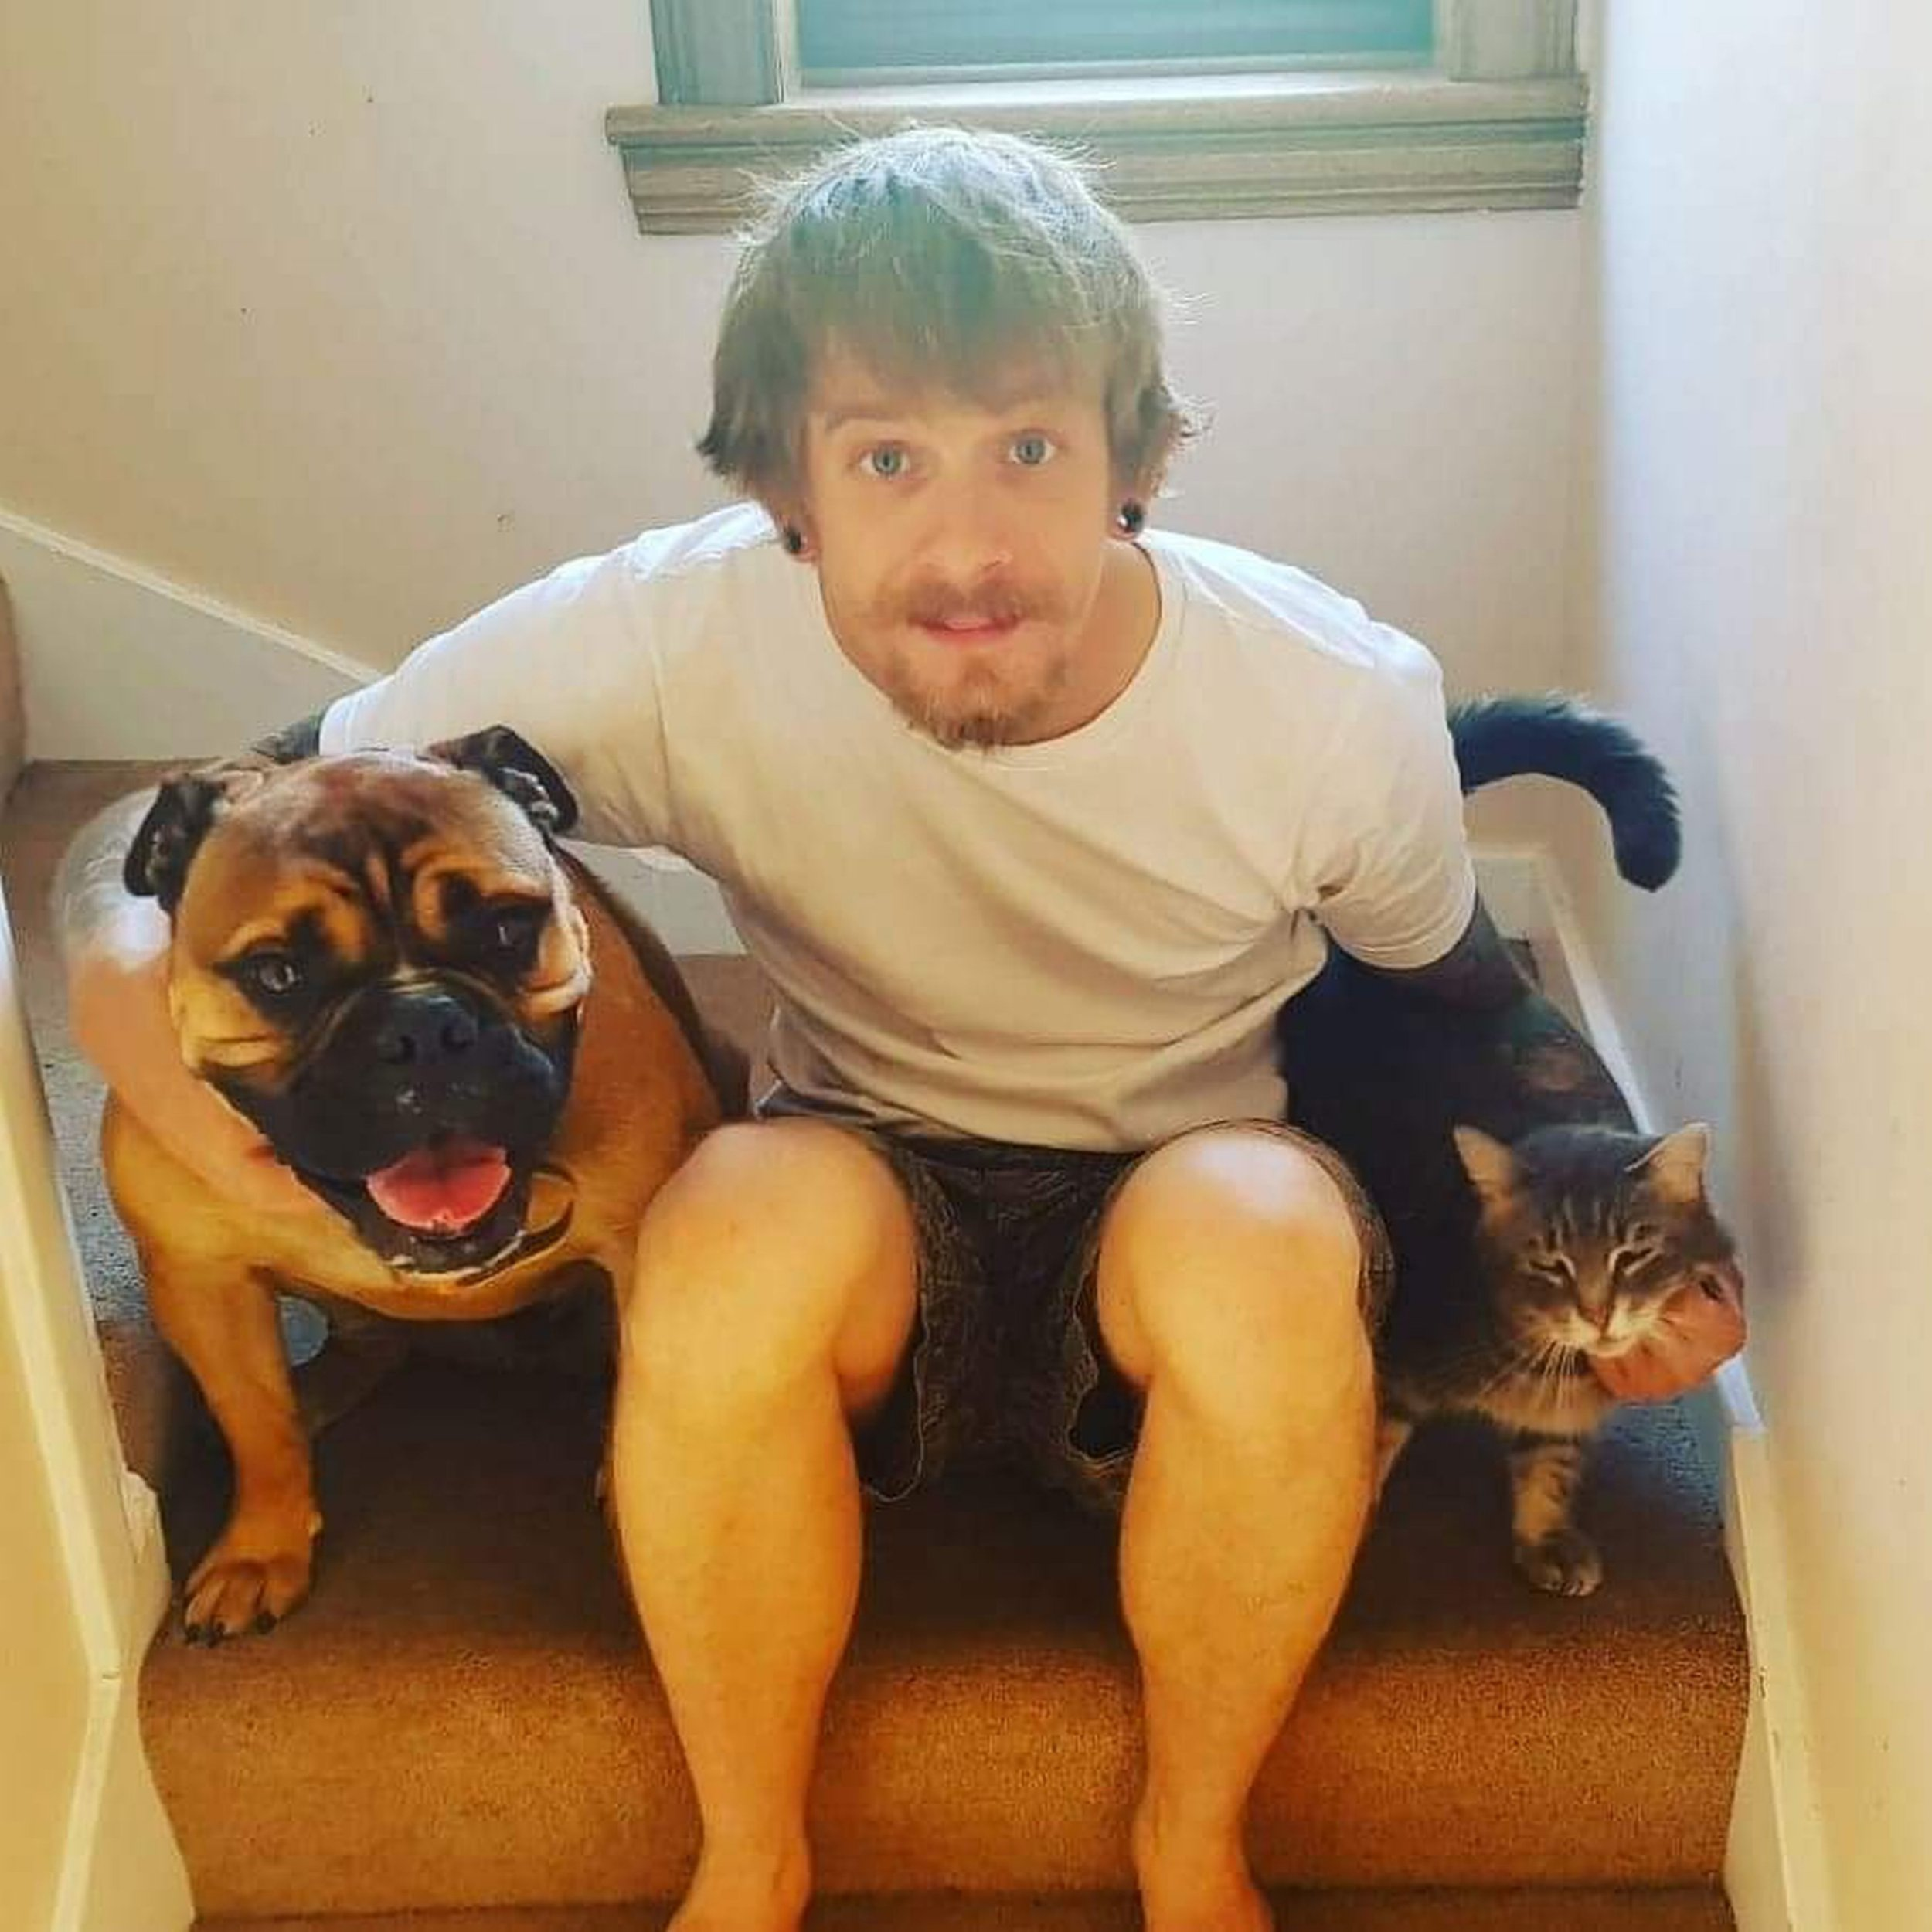 PIC FROM Kennedy News and Media (PICTURED: BEGBIE, MATT KENNEDY, 33, AND TAG) Two kind-hearted workmen raced over to assist a dog walker and revive her ???dead??? dog - only to discover the petulant pooch was staging a lie-down protest at not going on his favourite walking route. Professional dog walker Michele Bilsland had agreed to take Old English Bulldog Begbie on a shorter walk then usual last Friday afternoon due to the bad weather. Michele took Begbie, named after Robert Carlyle???s character in cult film Trainspotting, out of the cul-de-sac and turned left instead of right to take him on a quick walk around the block. SEE KENNEDY NEWS COPY - 0161 697 4266